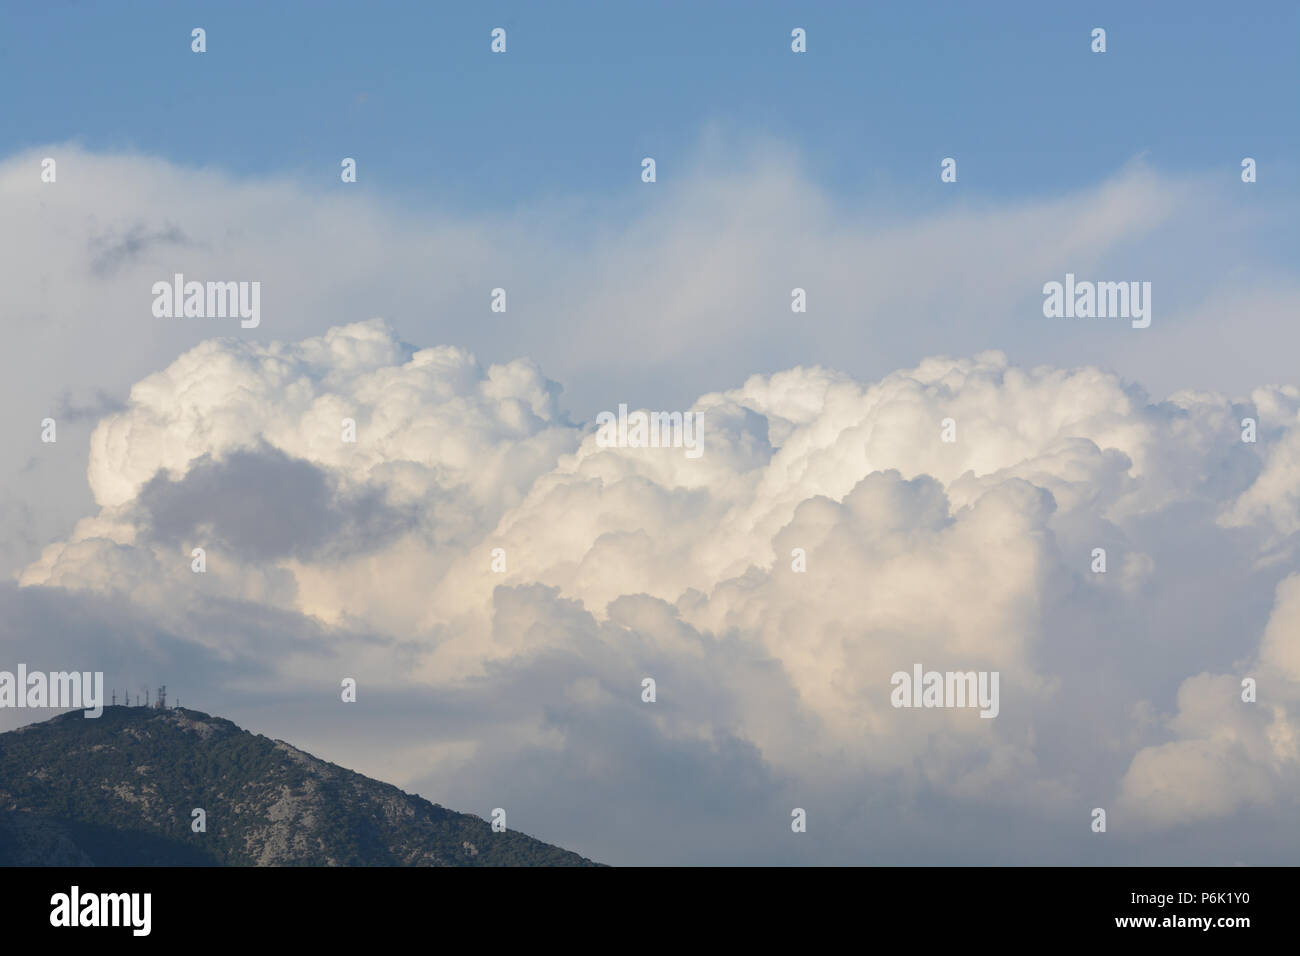 Majesty cumulonimbus indicating that in the distance a storm is underway with very high rainfall rates - Stock Image